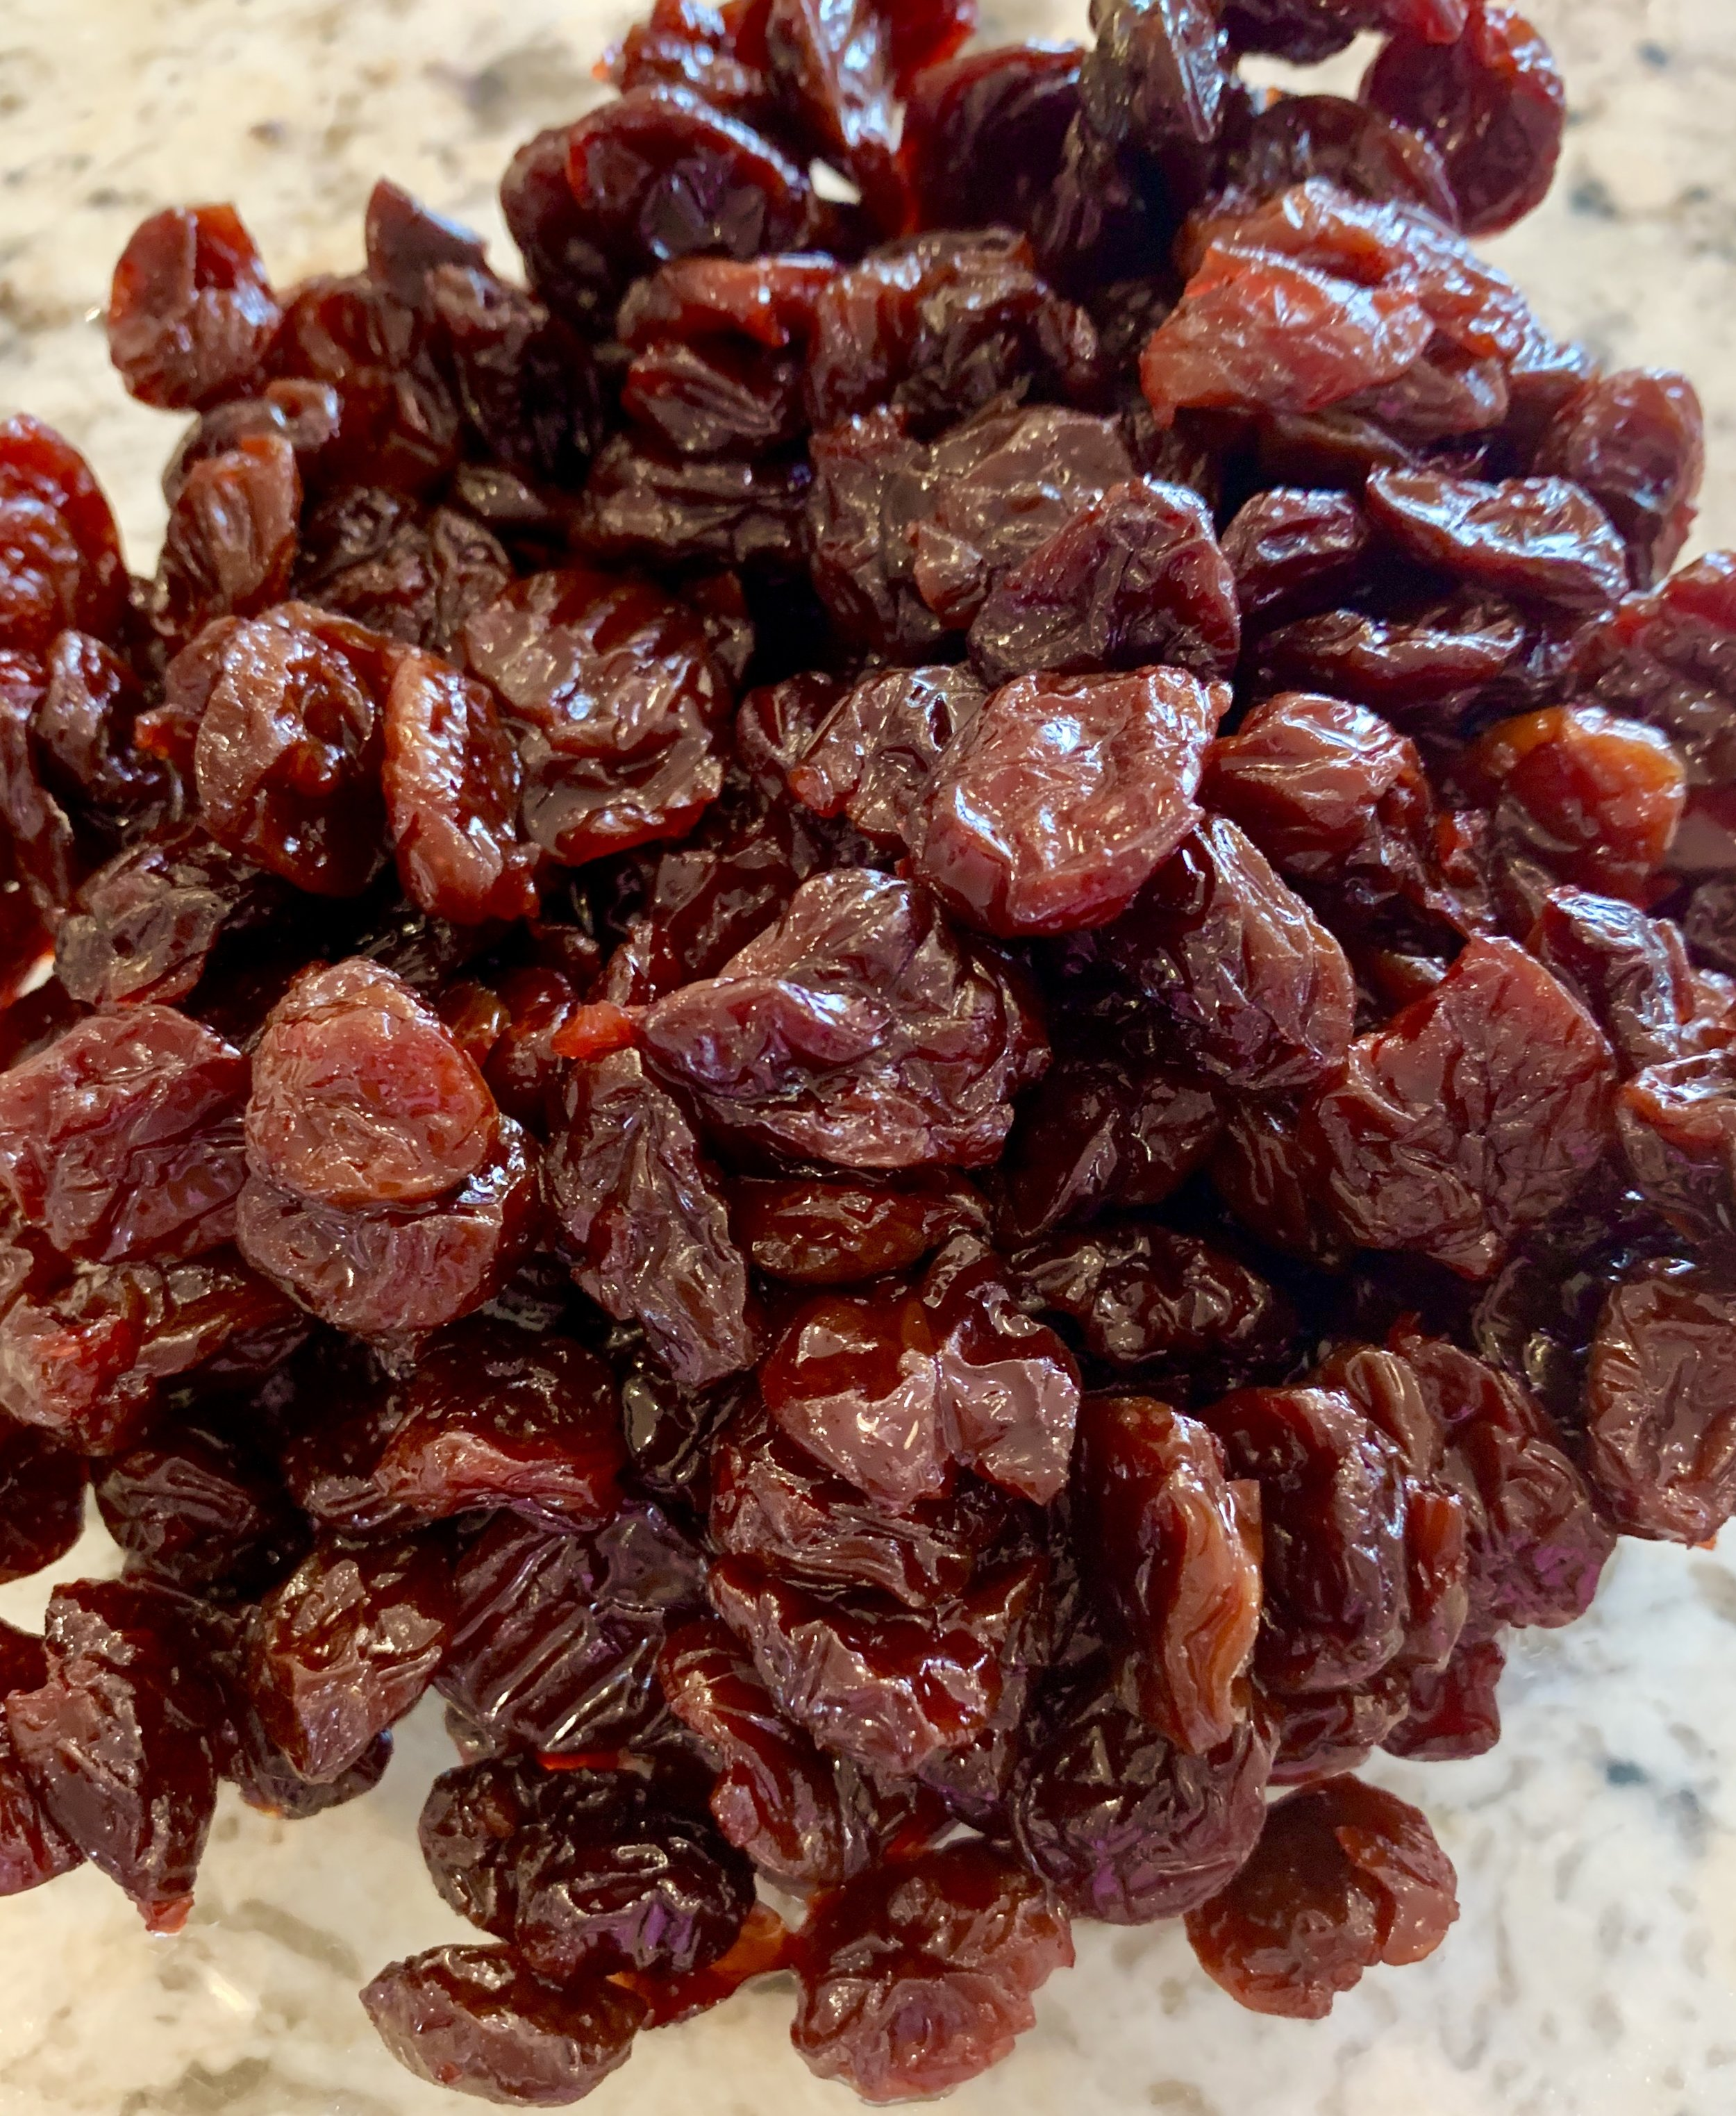 Start with very moist and sweet dried cherries.